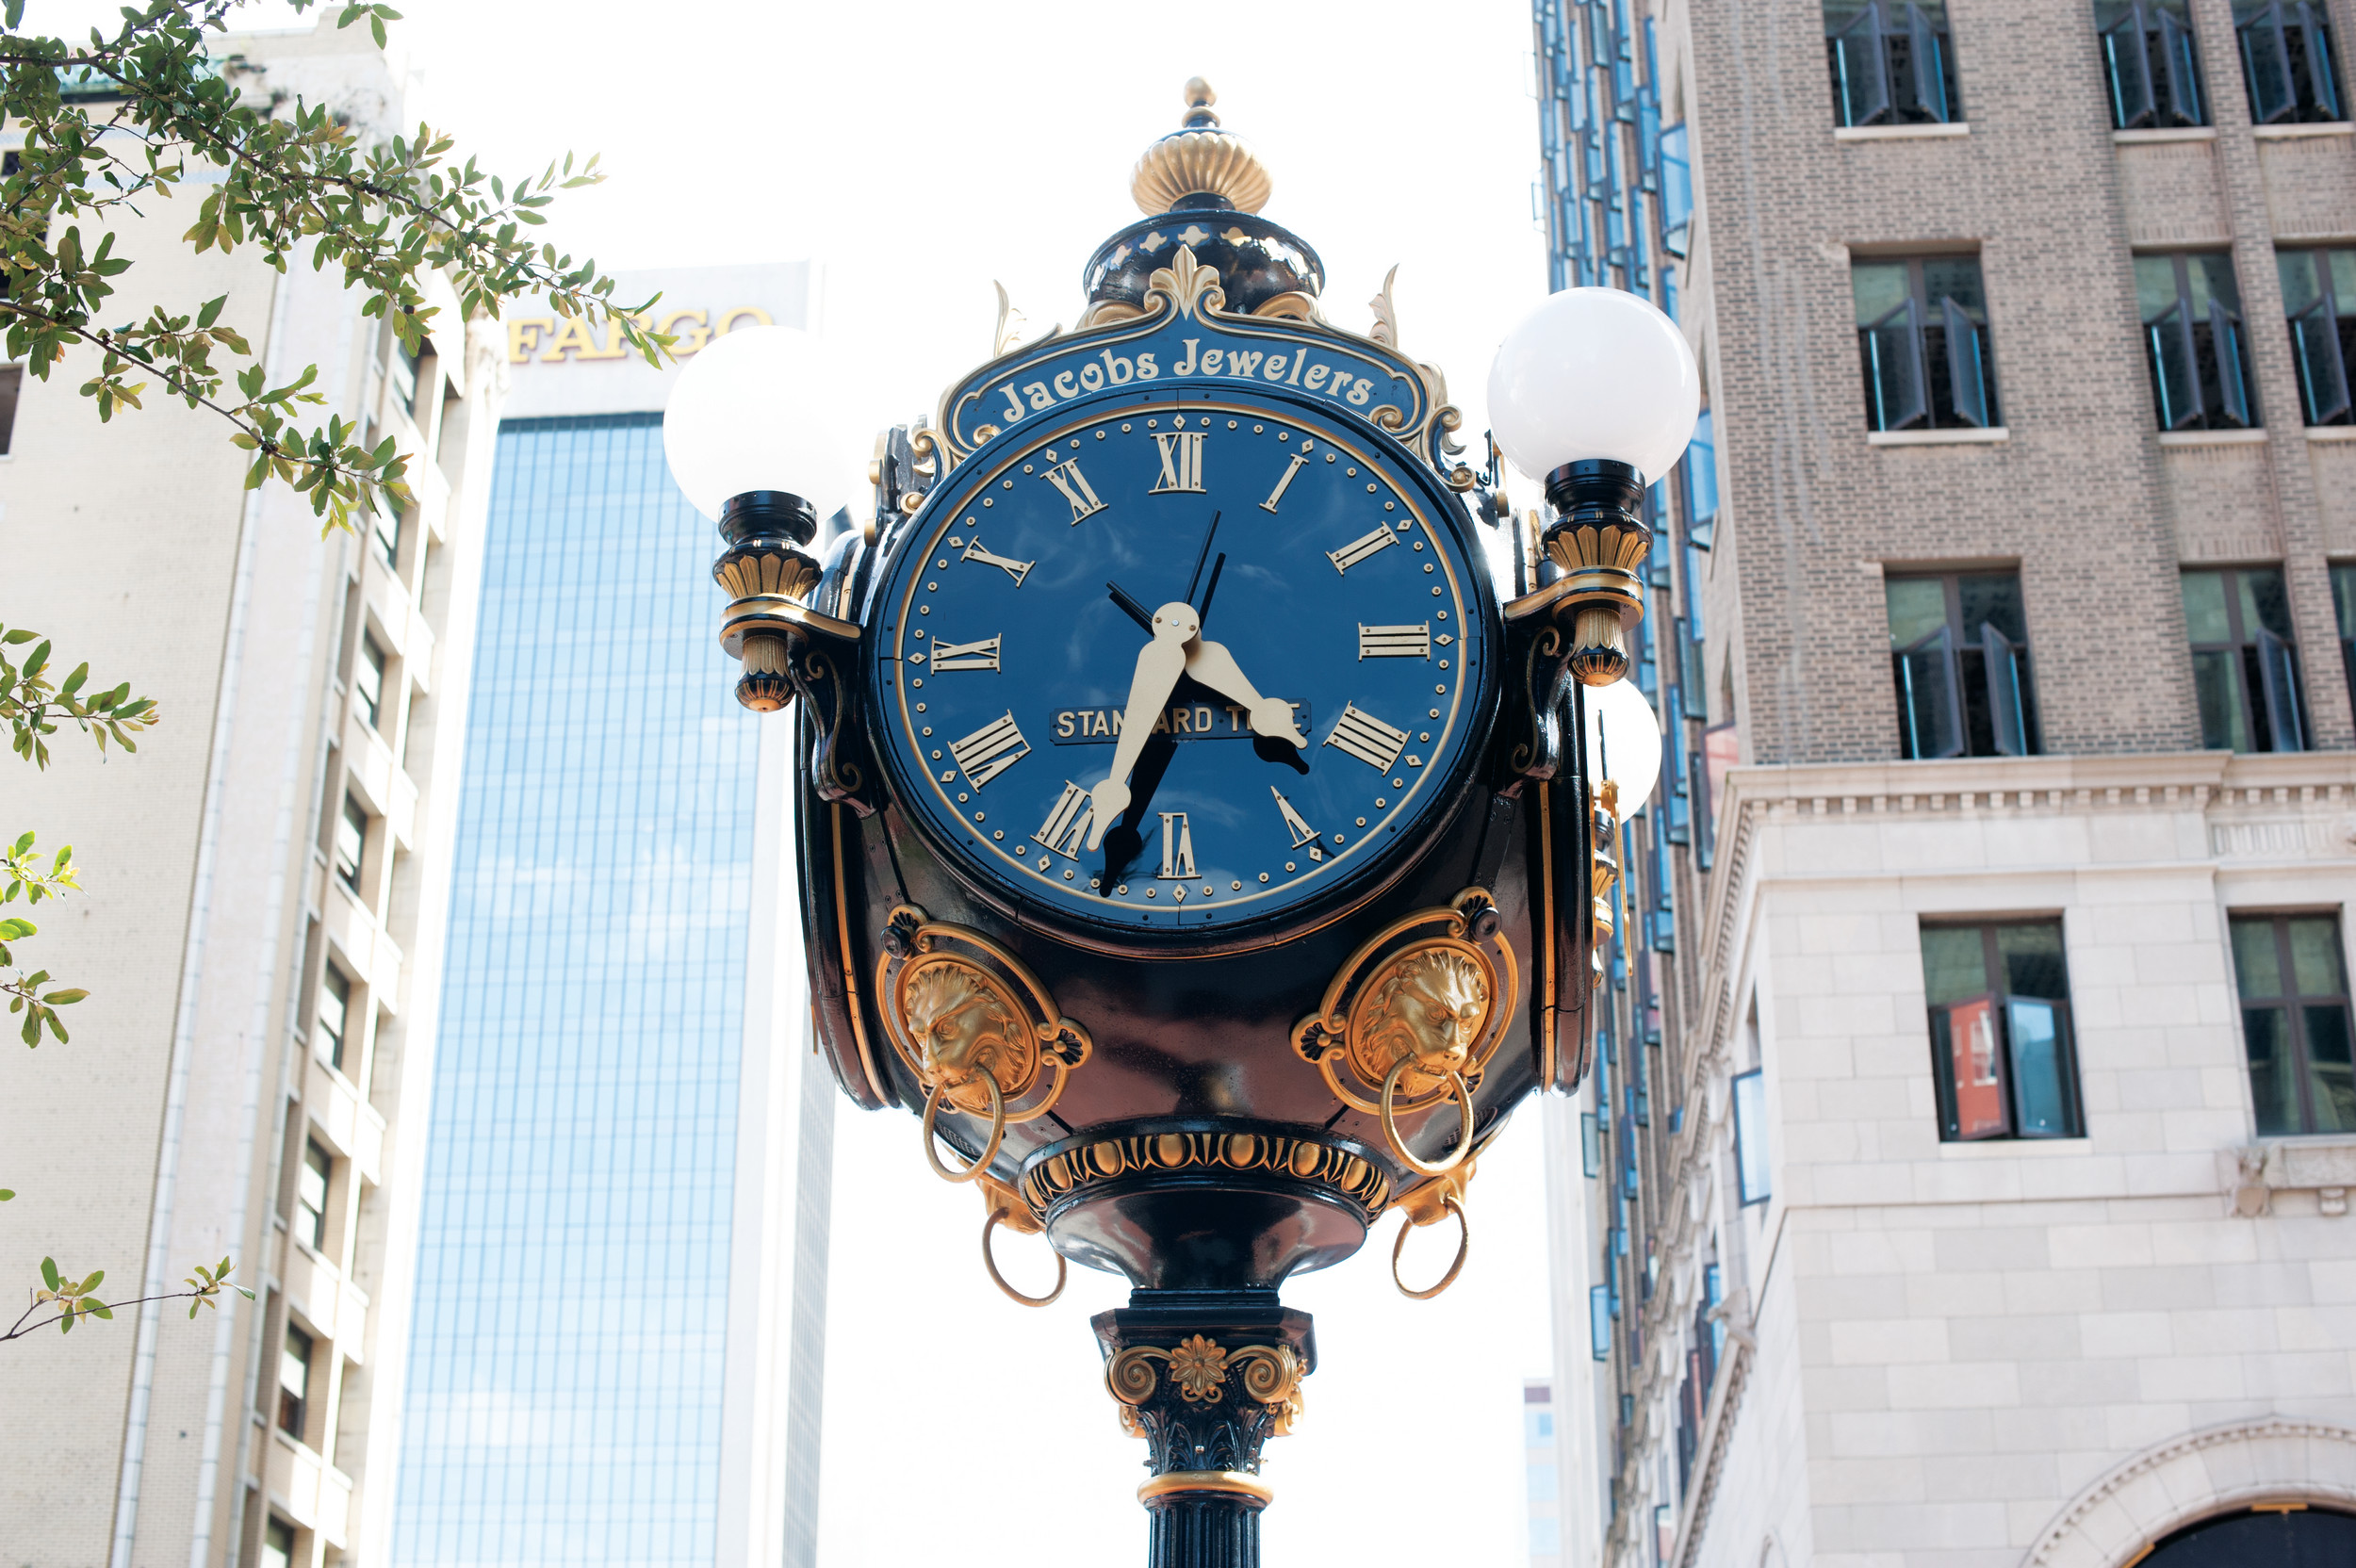 Jacob Jewelers clock